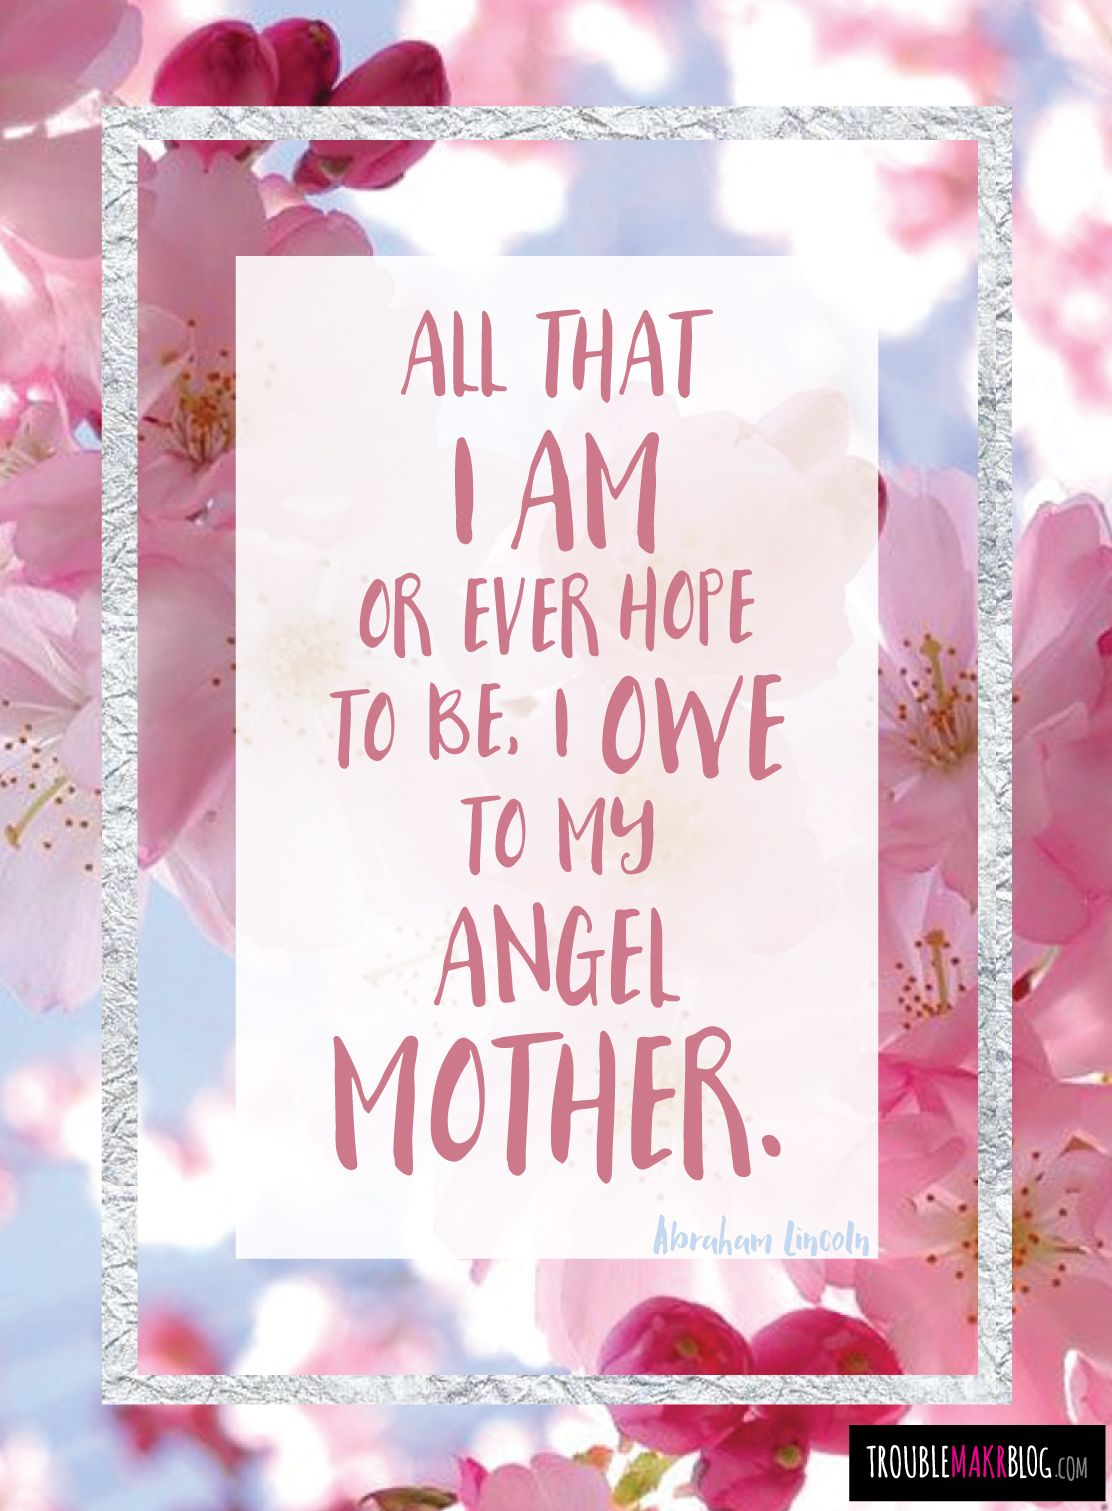 Troublemakrblogcom Mothers Day Quotes All That I Am Or Ever Hope